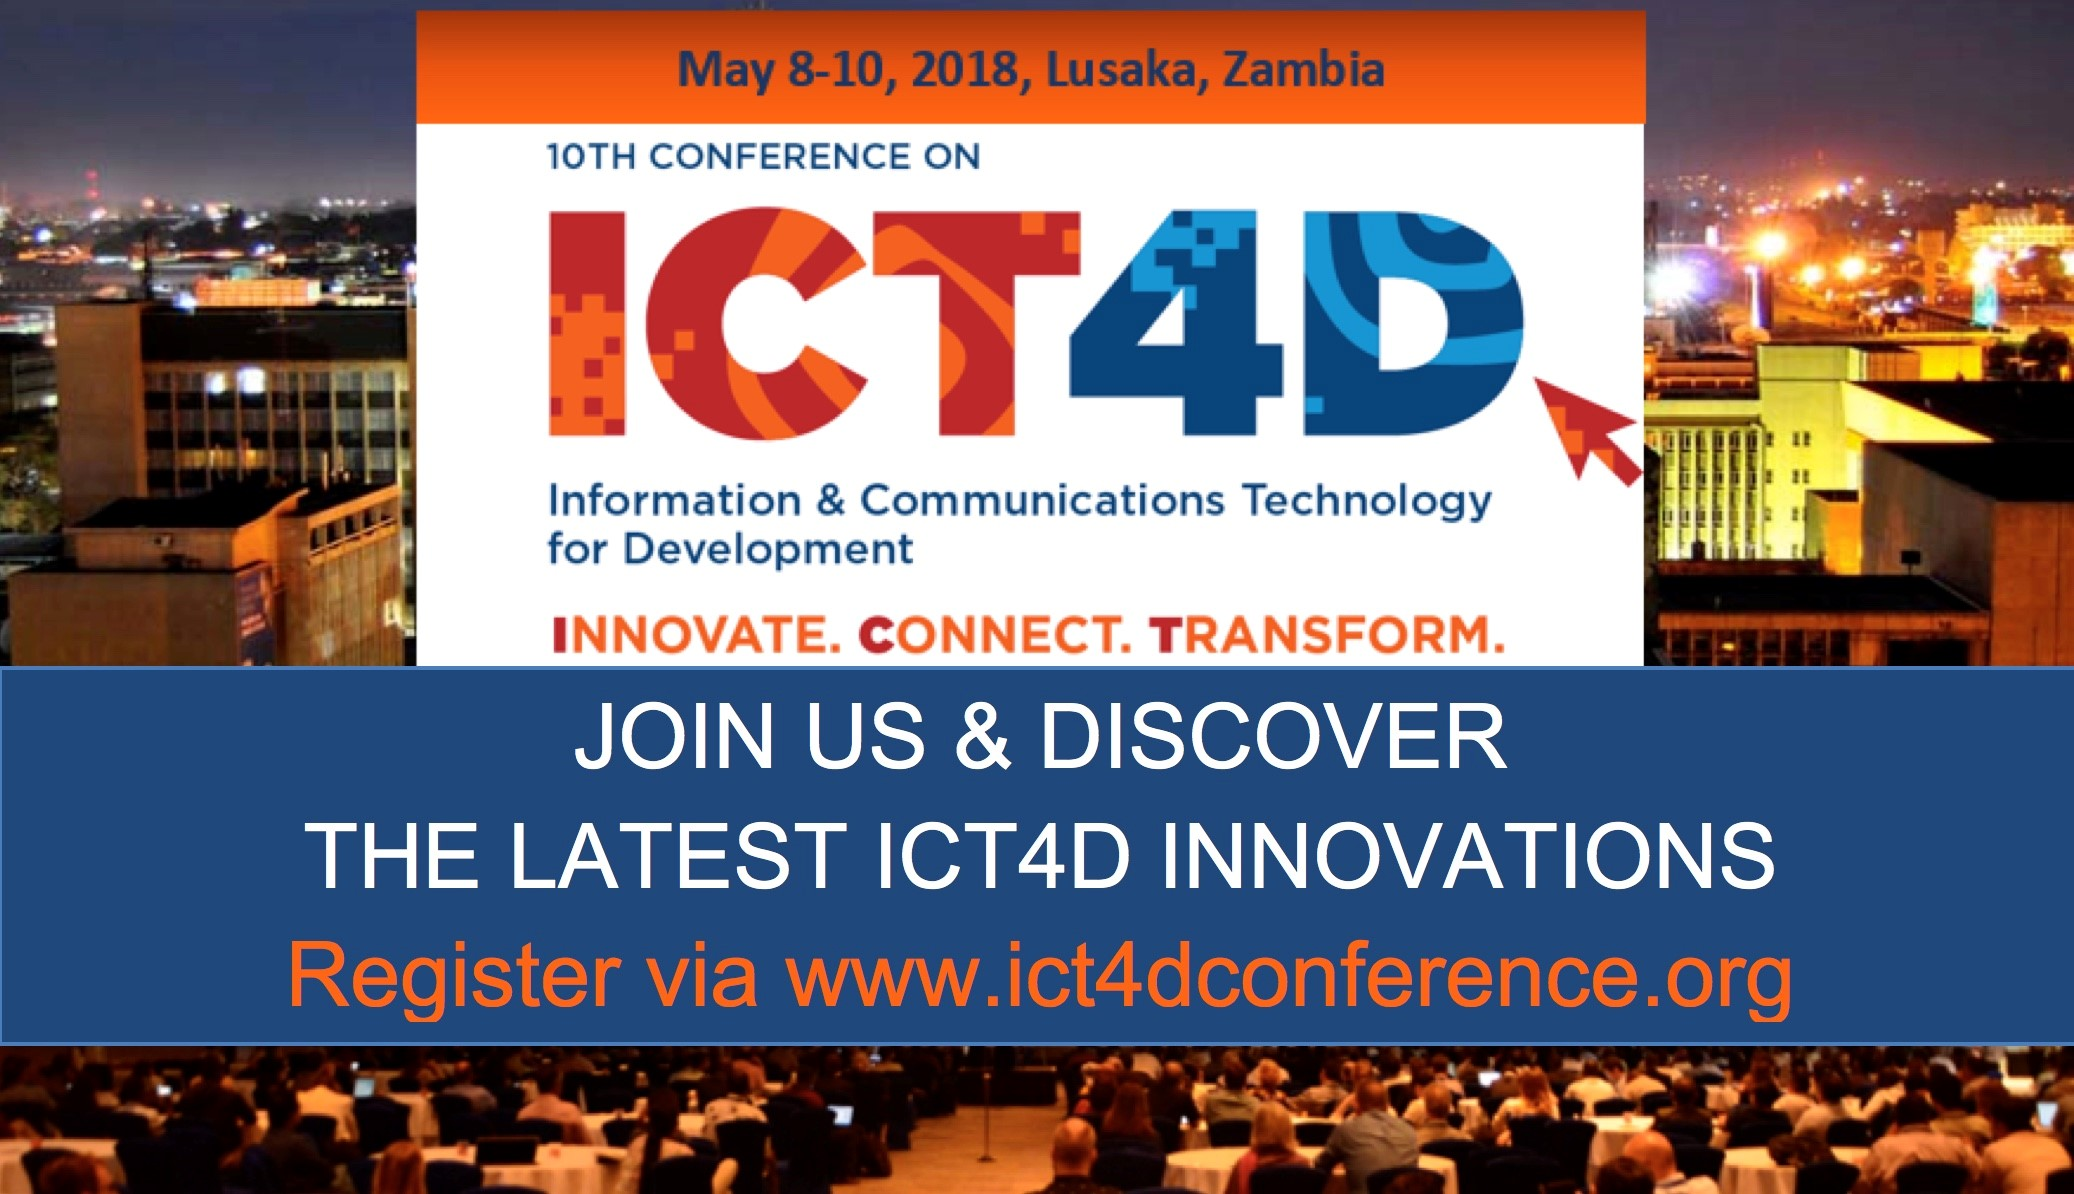 WHY ATTEND THE ICT4D CONFERENCE?